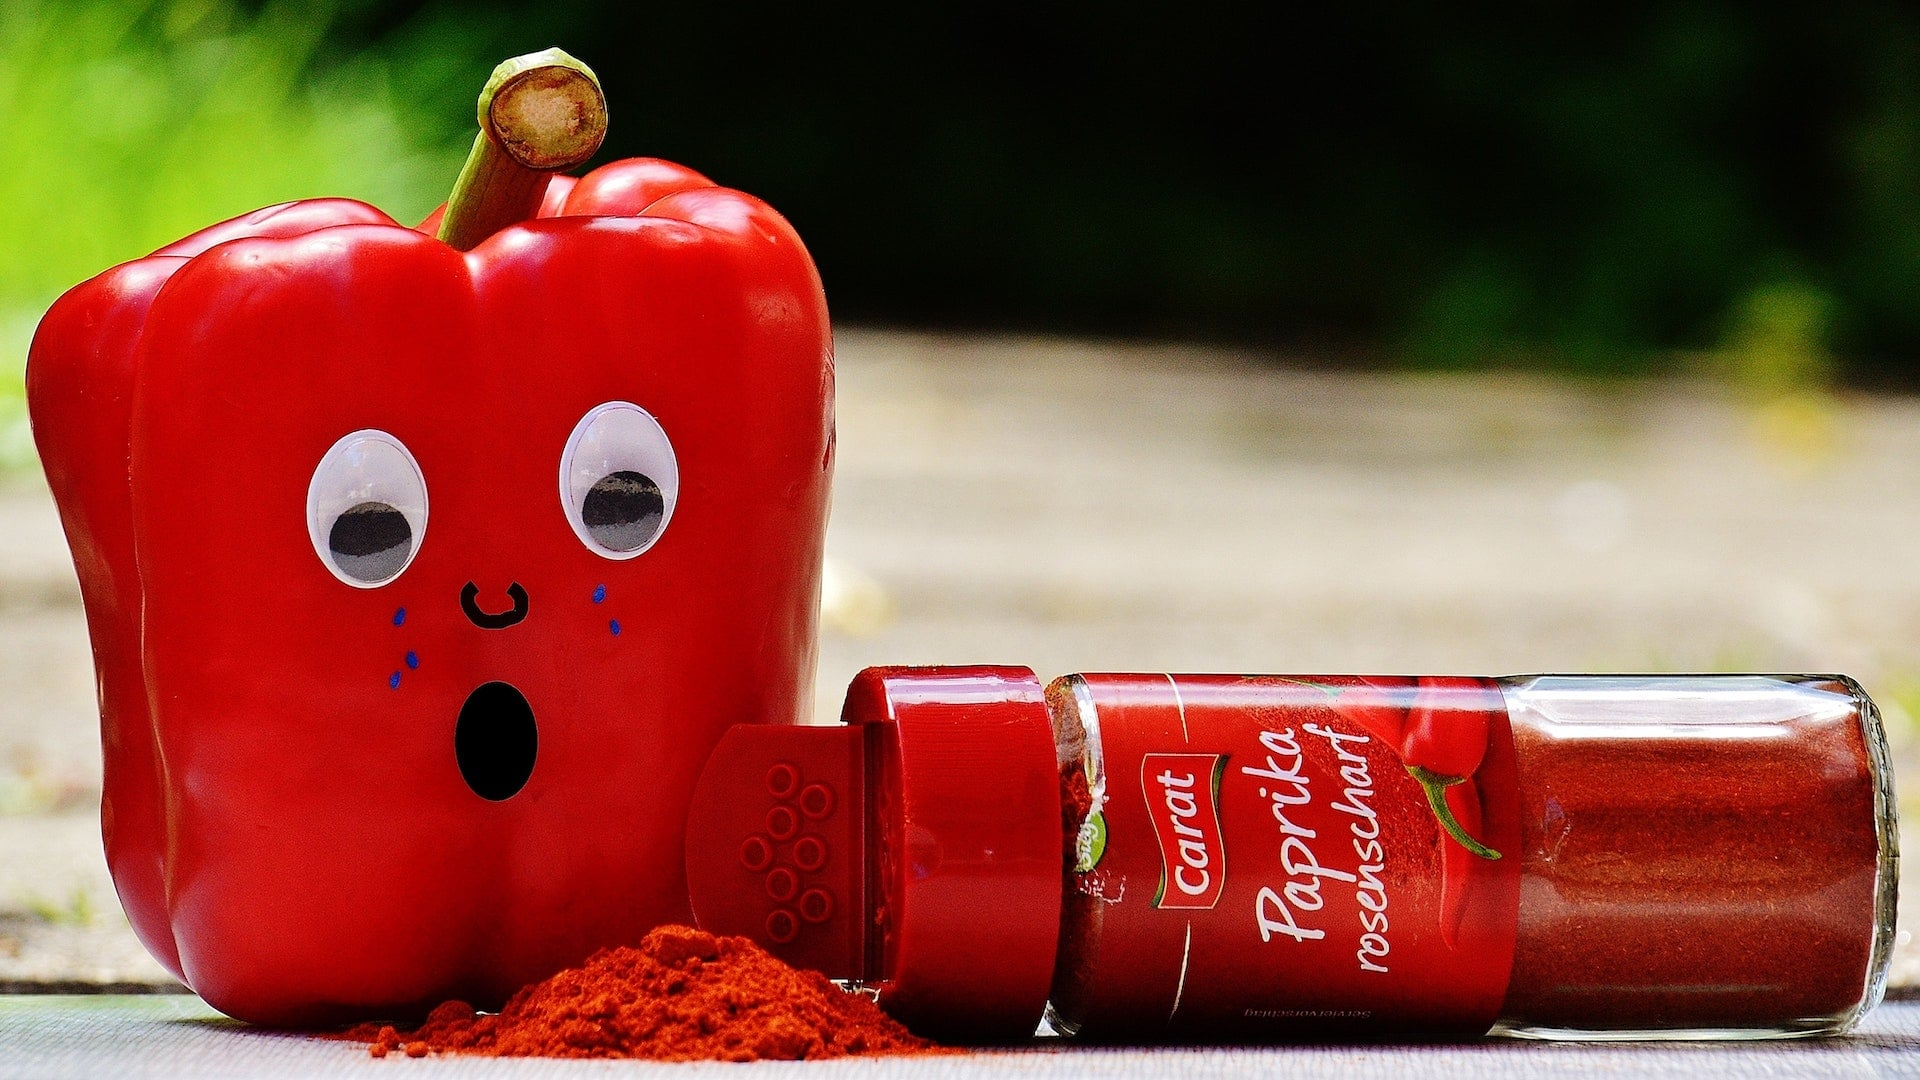 red pepper paprika bottle